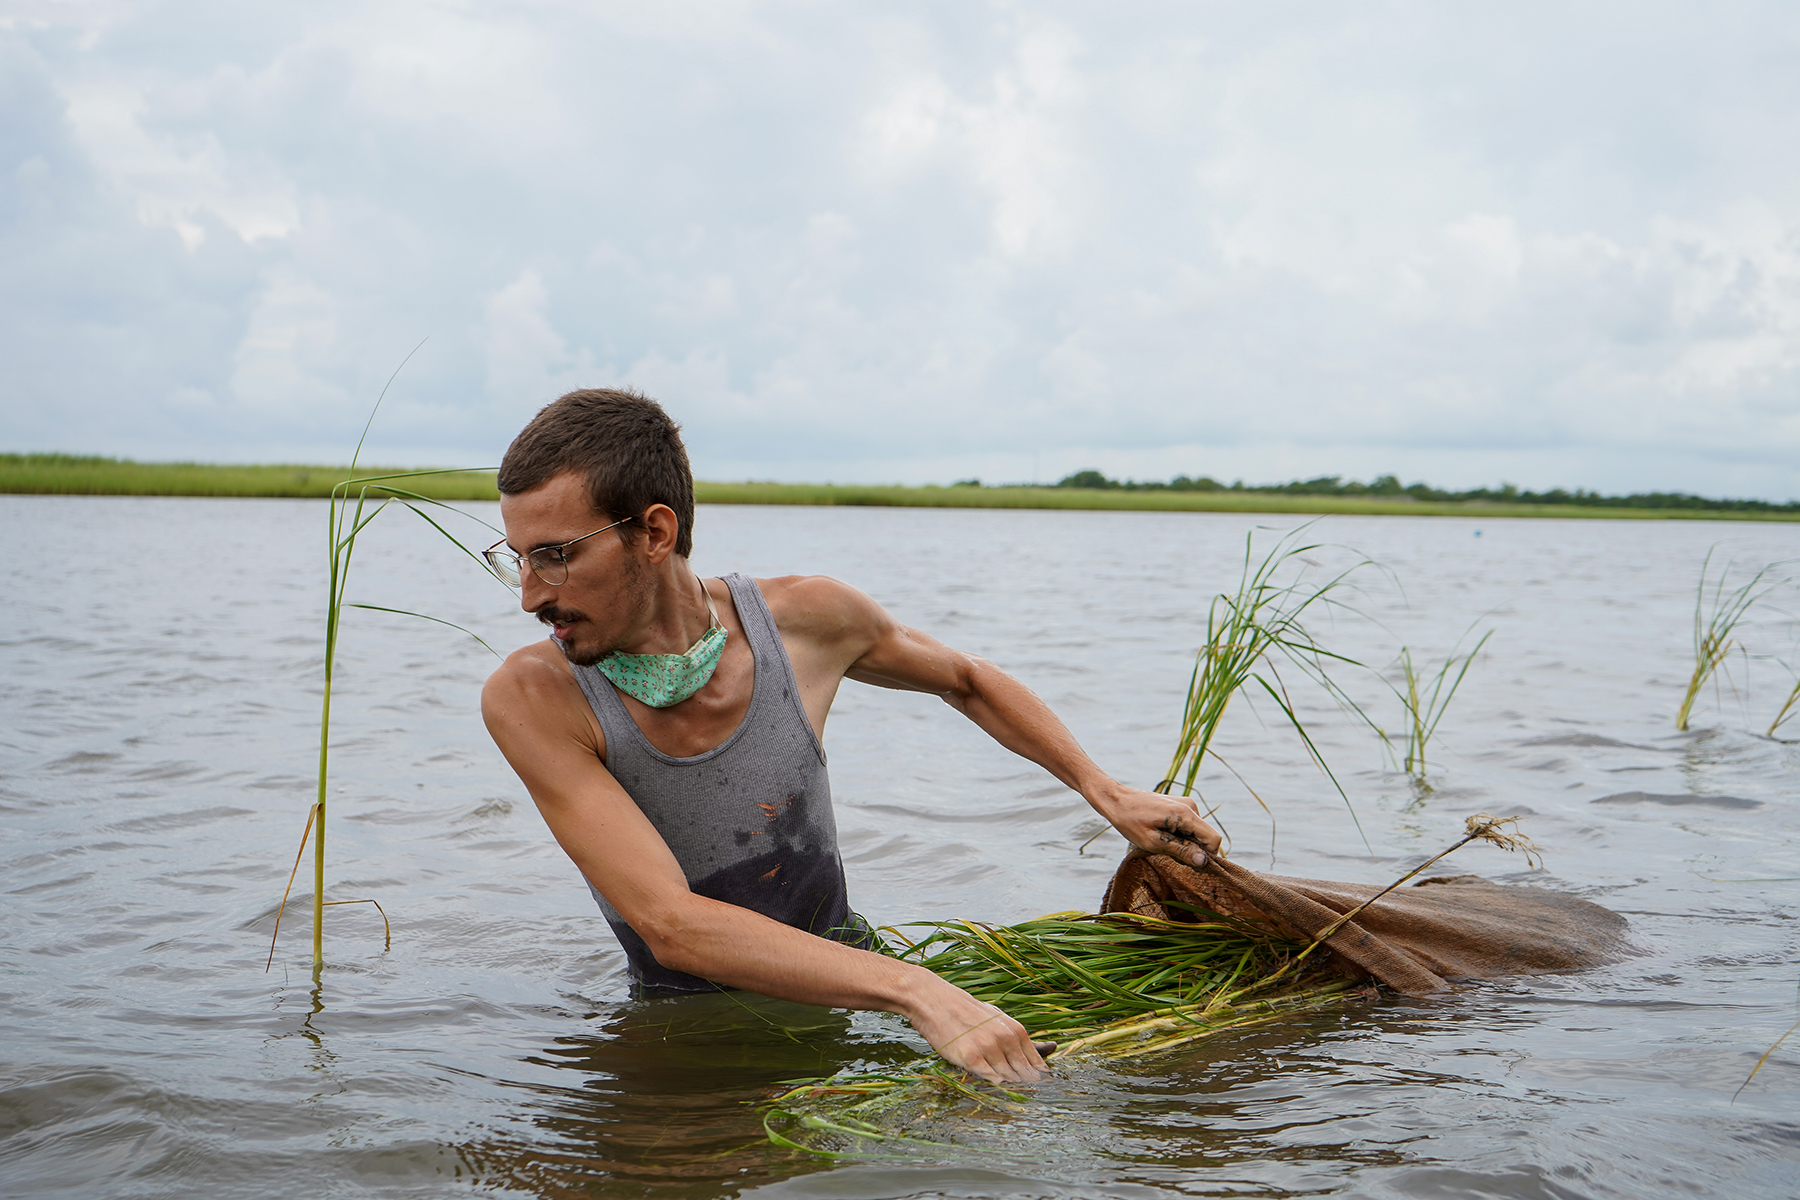 AmeriCorp volunteer Calin Pons (they/them), 26, from State College, Pennsylvania, pulls a bag of grass plugs through the water.